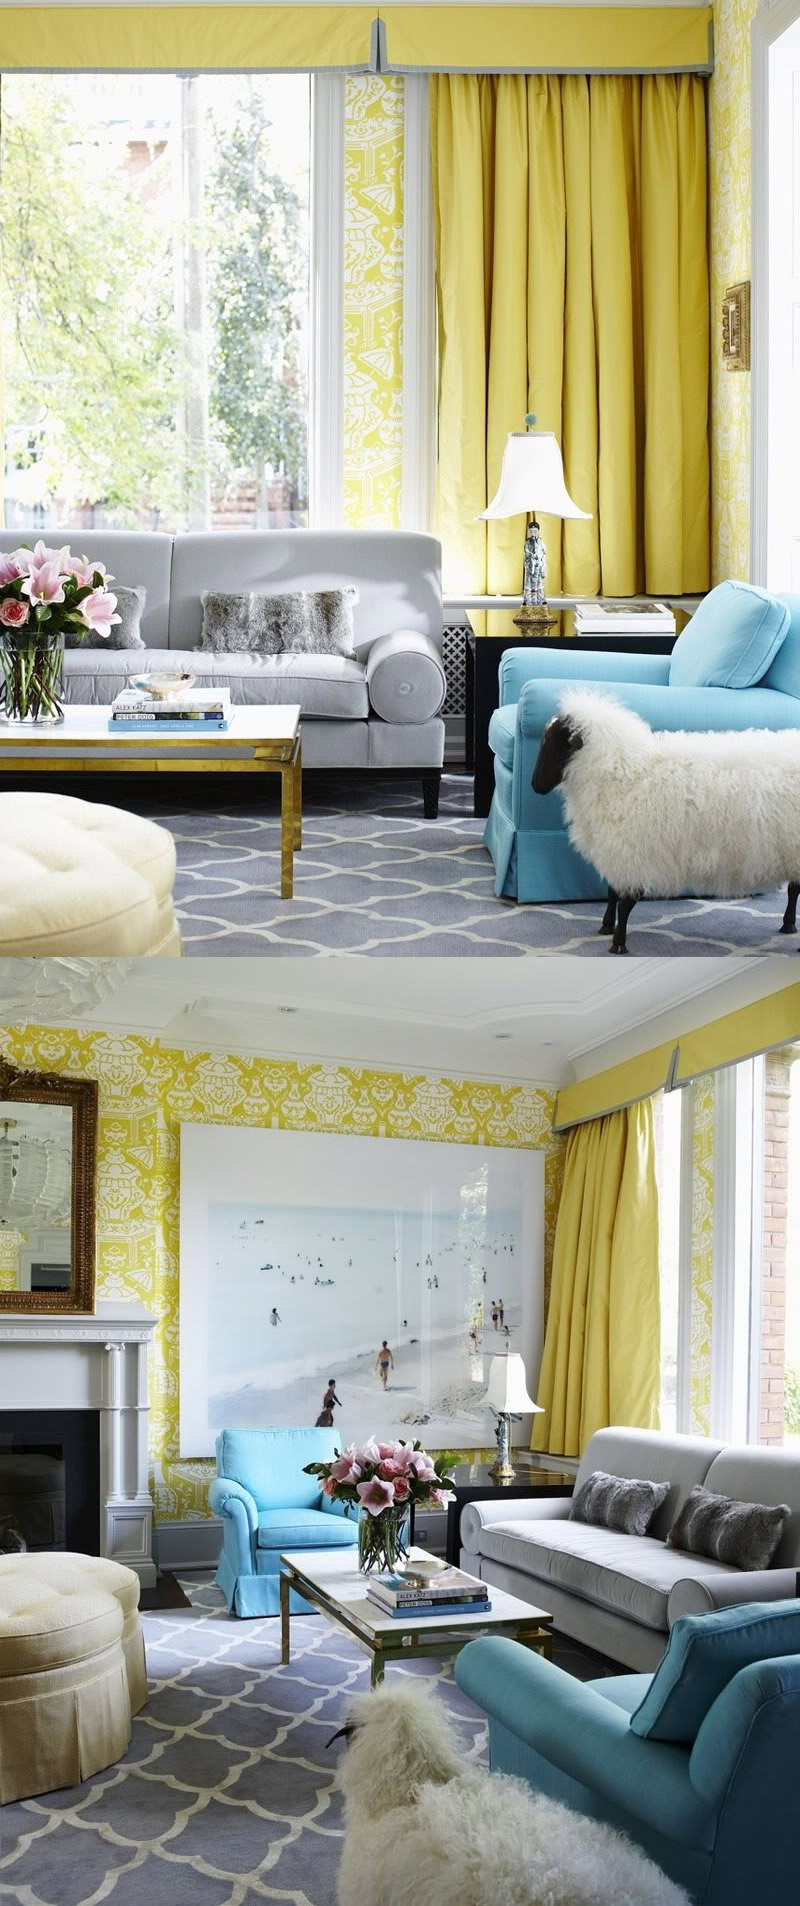 48 yellow duck egg blue grey living room interior design for Yellow and grey living room ideas